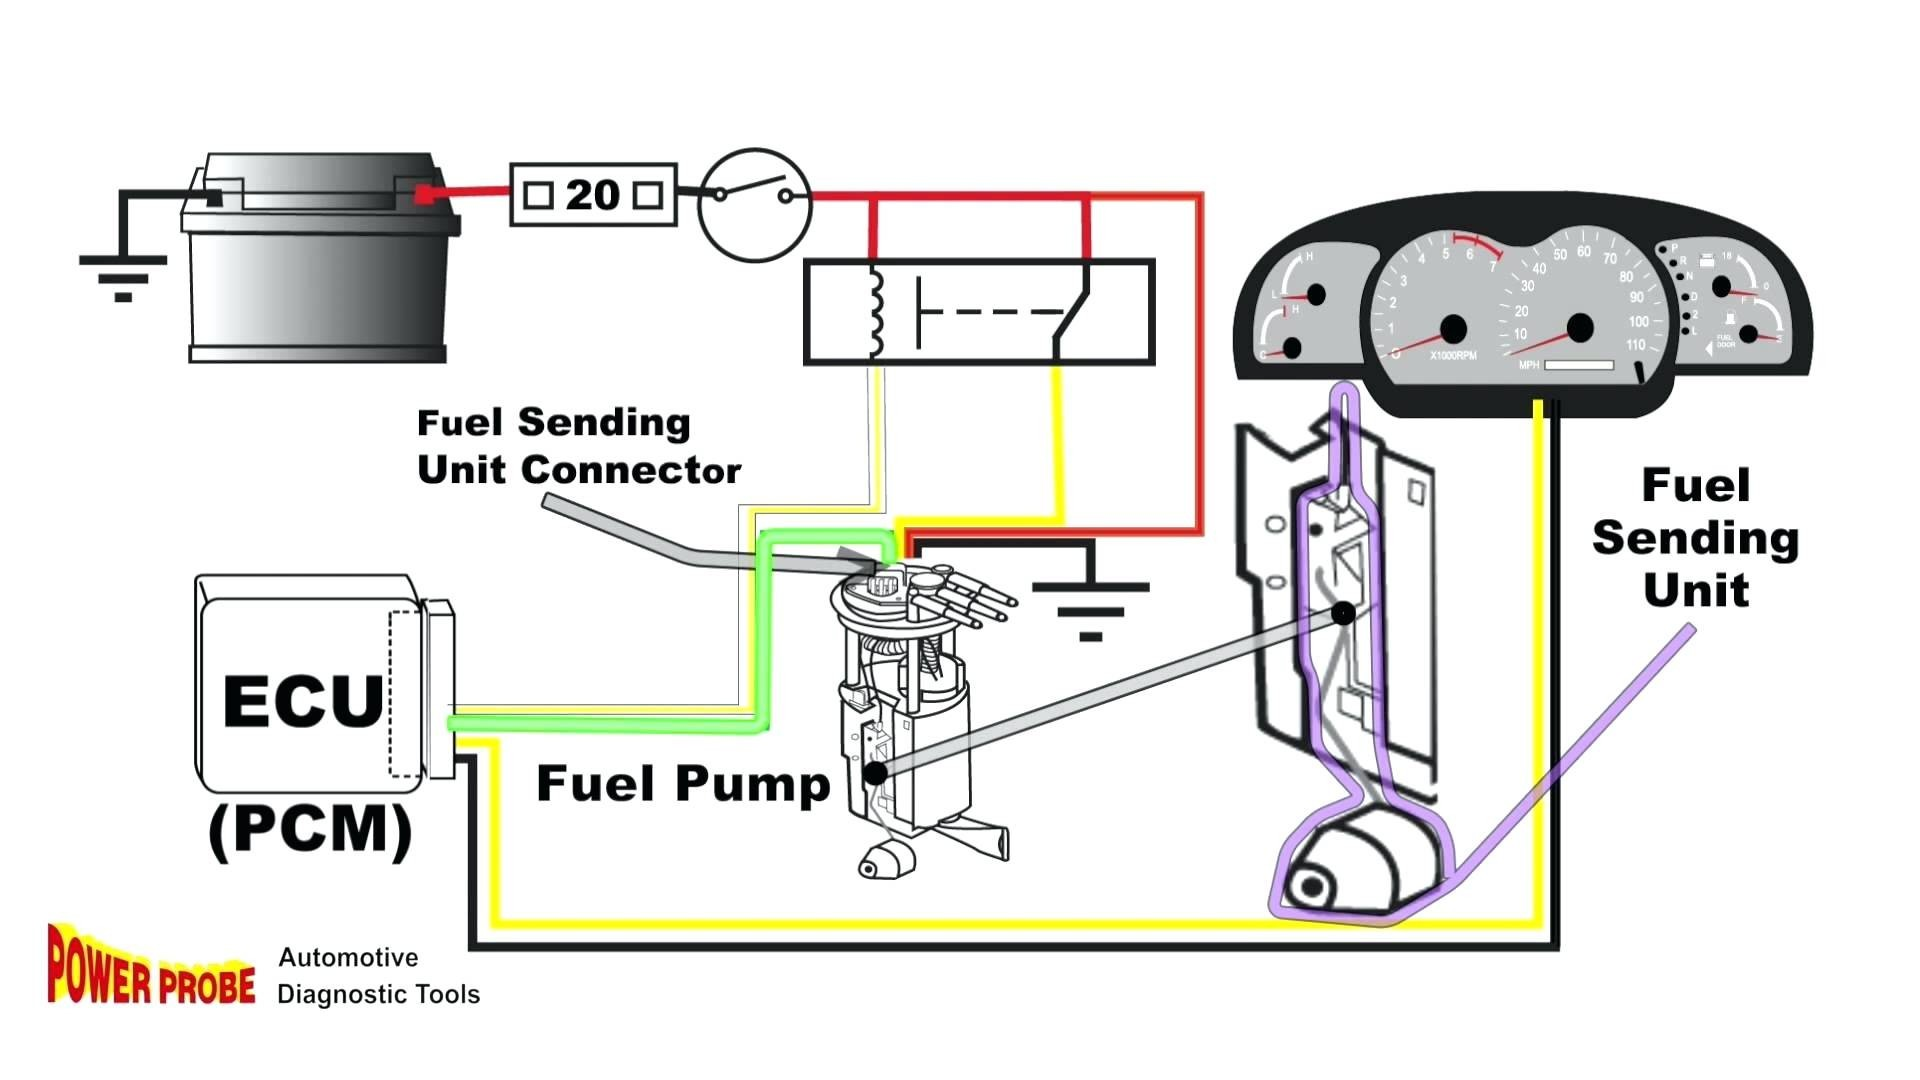 Fuel Sender Wiring Diagram - Free Wiring Diagram For You • on 3 bank battery charger wiring diagram, murphy switch wiring diagram, johnson boat motor wiring diagram, solenoid switch wiring diagram, evinrude key switch wiring diagram, mercury ignition switch wiring diagram, smartcraft wiring harness, 97 ford explorer wiring diagram, smartcraft nmea 0183 wiring-diagram, car panel diagram, 4.3 mercruiser engine wiring diagram, 1978 johnson outboard wiring diagram, faria tach wiring diagram, mercruiser 5.0 engine diagram, mercury outboard wiring diagram, murphy engine wiring diagram, omc ignition switch wiring diagram, evinrude power trim wiring diagram, ranger boat wiring diagram, vdo tach wiring diagram,